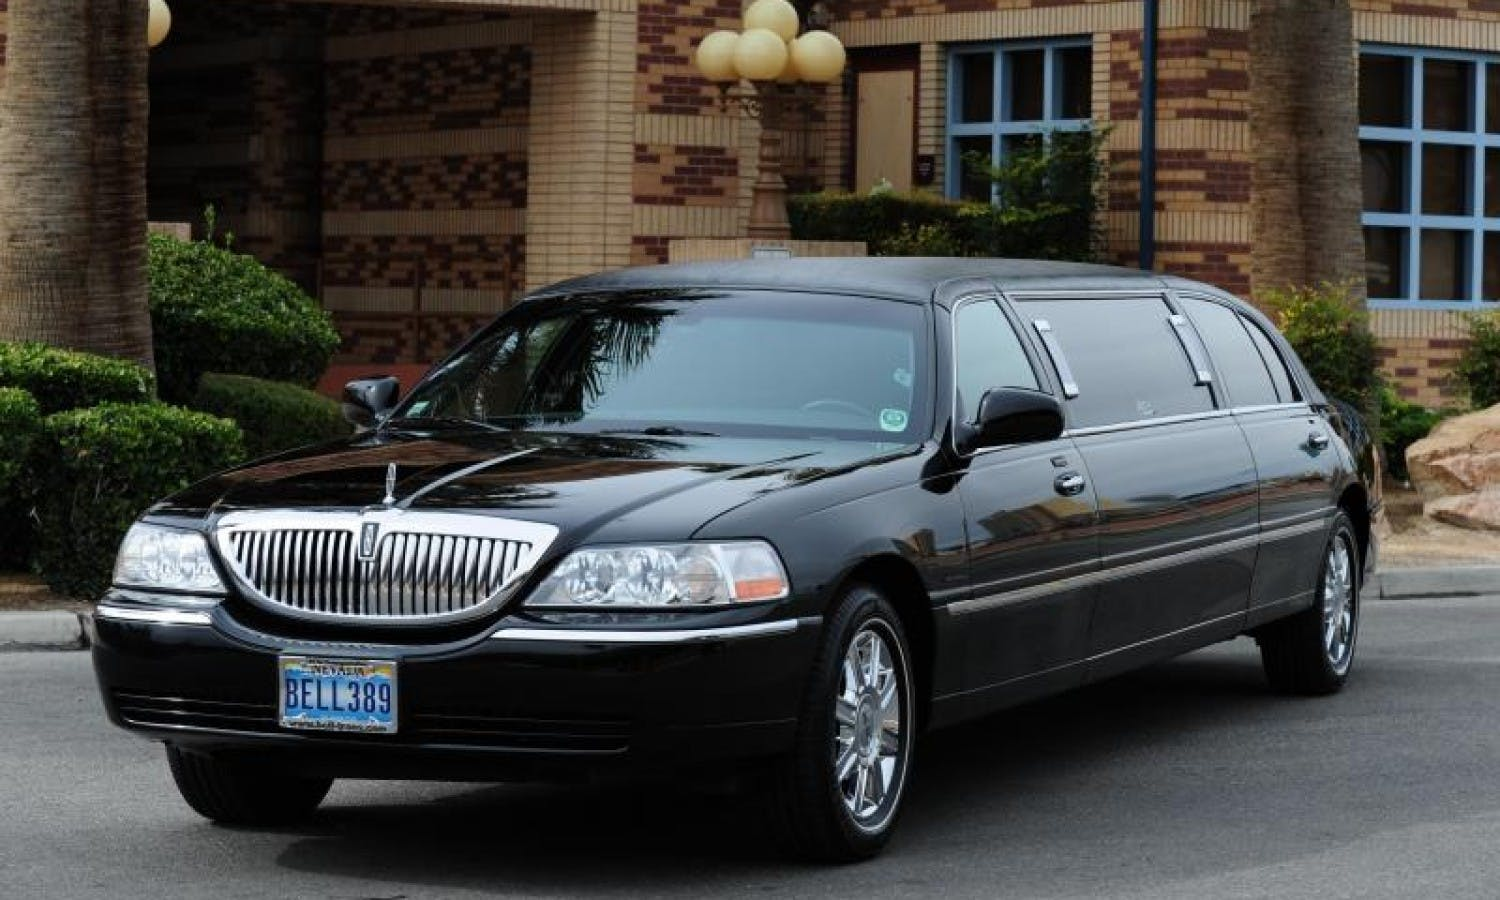 Stretch limousine from McCarran Airport to Las Vegas hotels